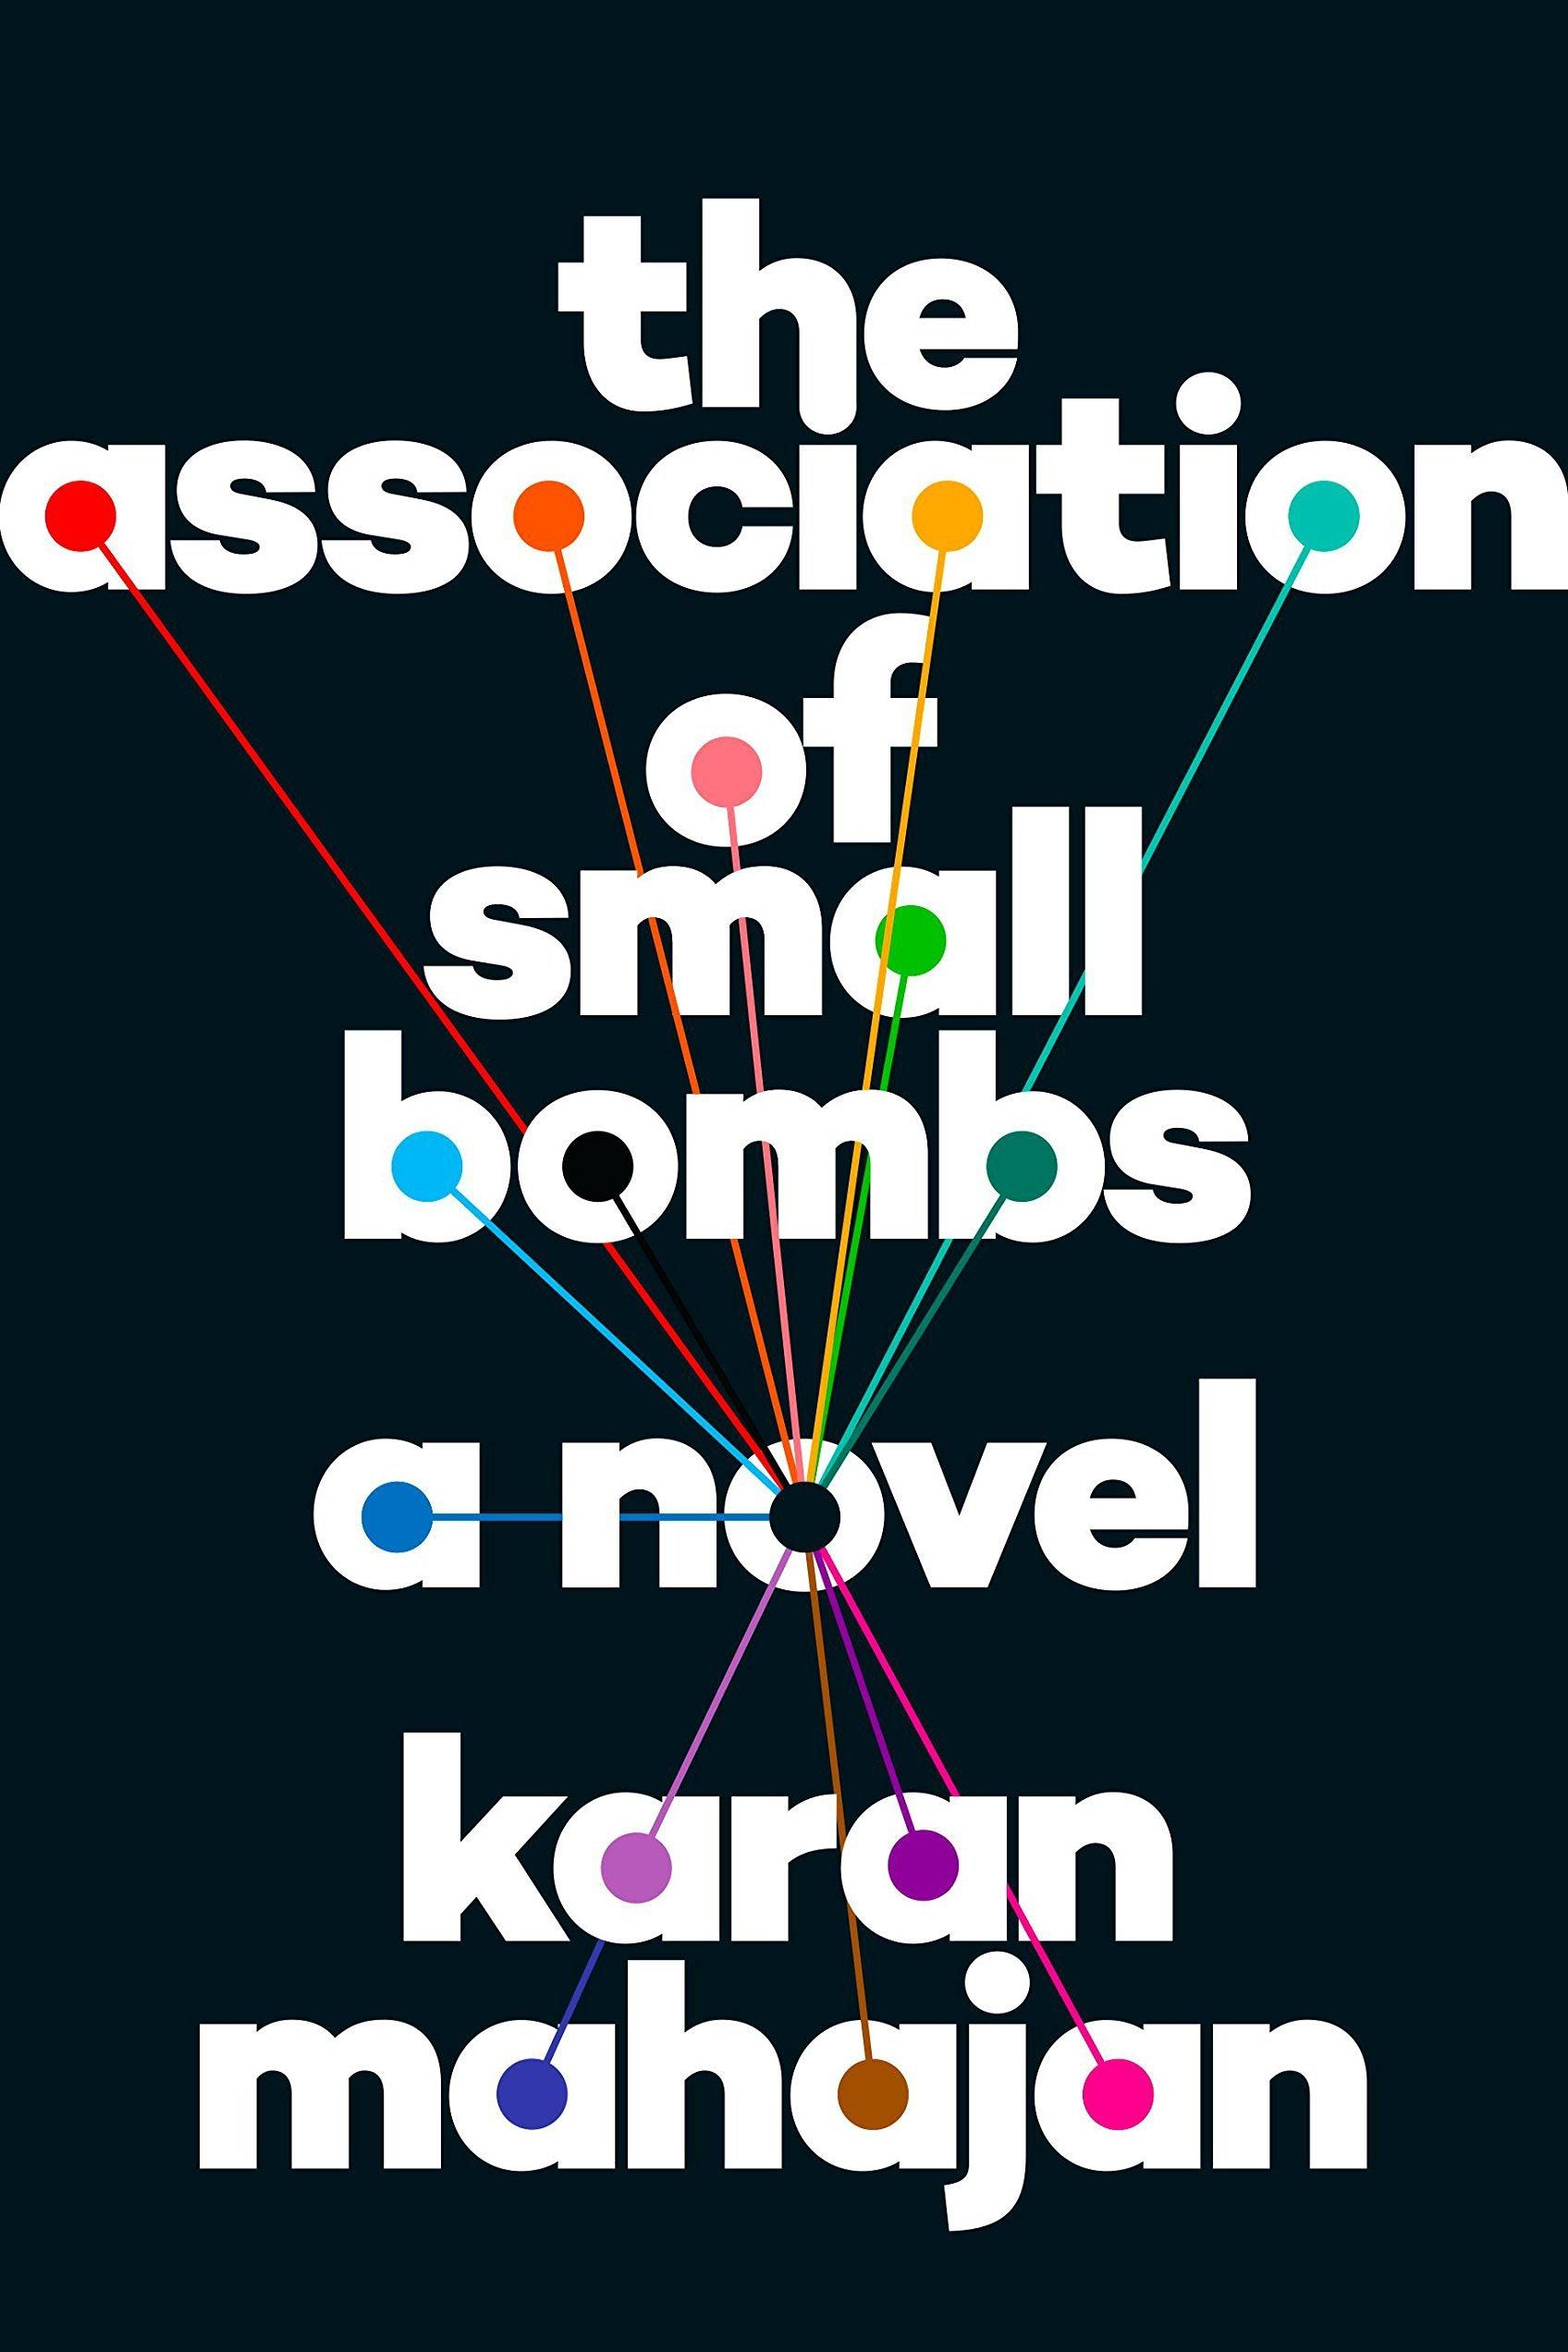 "<p>Two brothers and their friend – Mansoor Ahmed – are all together when a ""small"" bomb goes off, killing the brothers. It's a moment that follows Mansoor throughout his life, intertwining with the lives of others to create a powerful story for the ages.</p><p><strong data-redactor-tag=""strong"" data-verified=""redactor"">Why you'll love it:</strong> Mahajan's fearlessness as a writer and his&nbsp&#x3B;desire to push boundaries are absolutely addicting.</p><p><a href=""https://www.amazon.com/Association-Small-Bombs-Novel/dp/0525429638/ref=tmm_hrd_swatch_0?_encoding=UTF8&amp&#x3B;qid=1481654632&amp&#x3B;sr=1-1"" target=""_blank"" data-tracking-id=""recirc-text-link"">BUY NOW</a></p>"